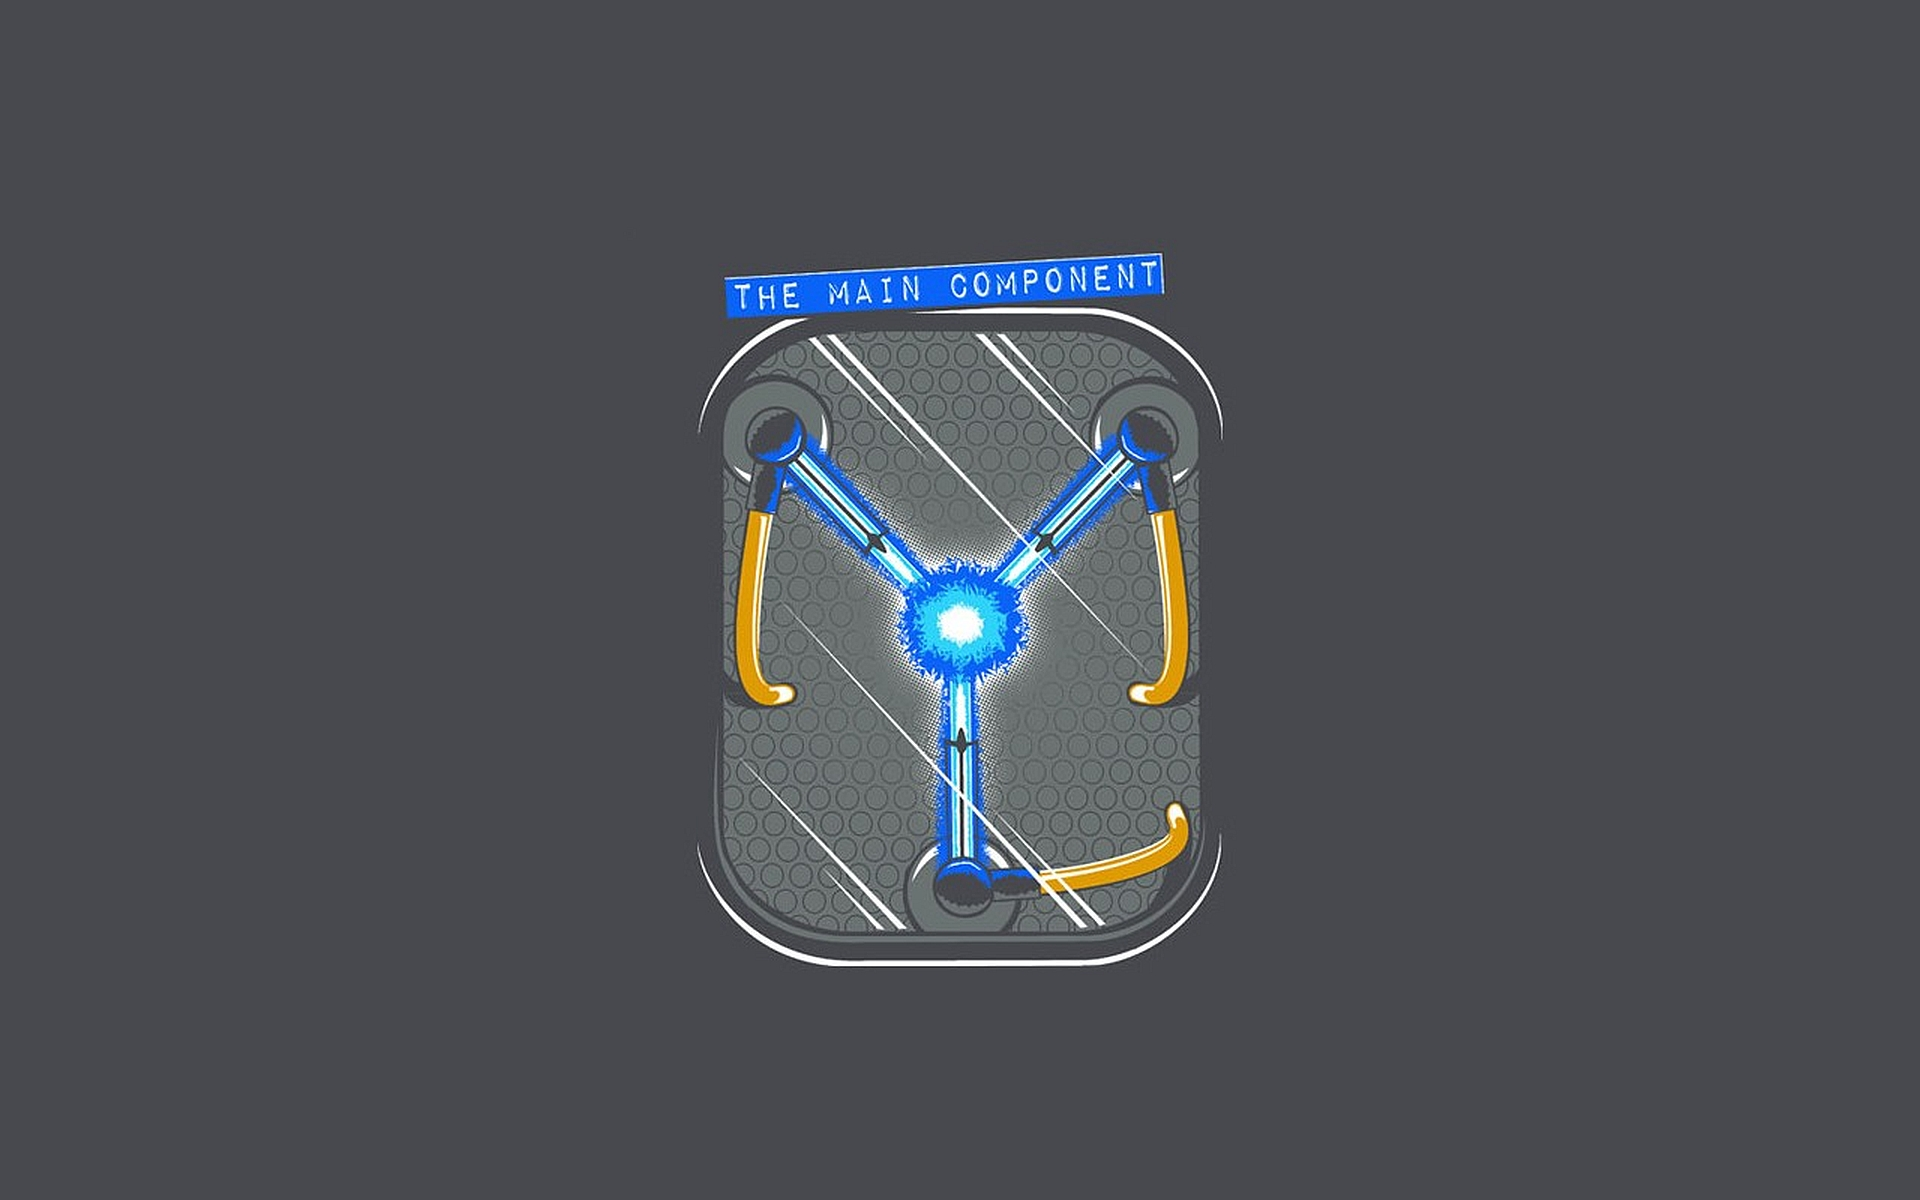 back to the future iphone wallpaper hd